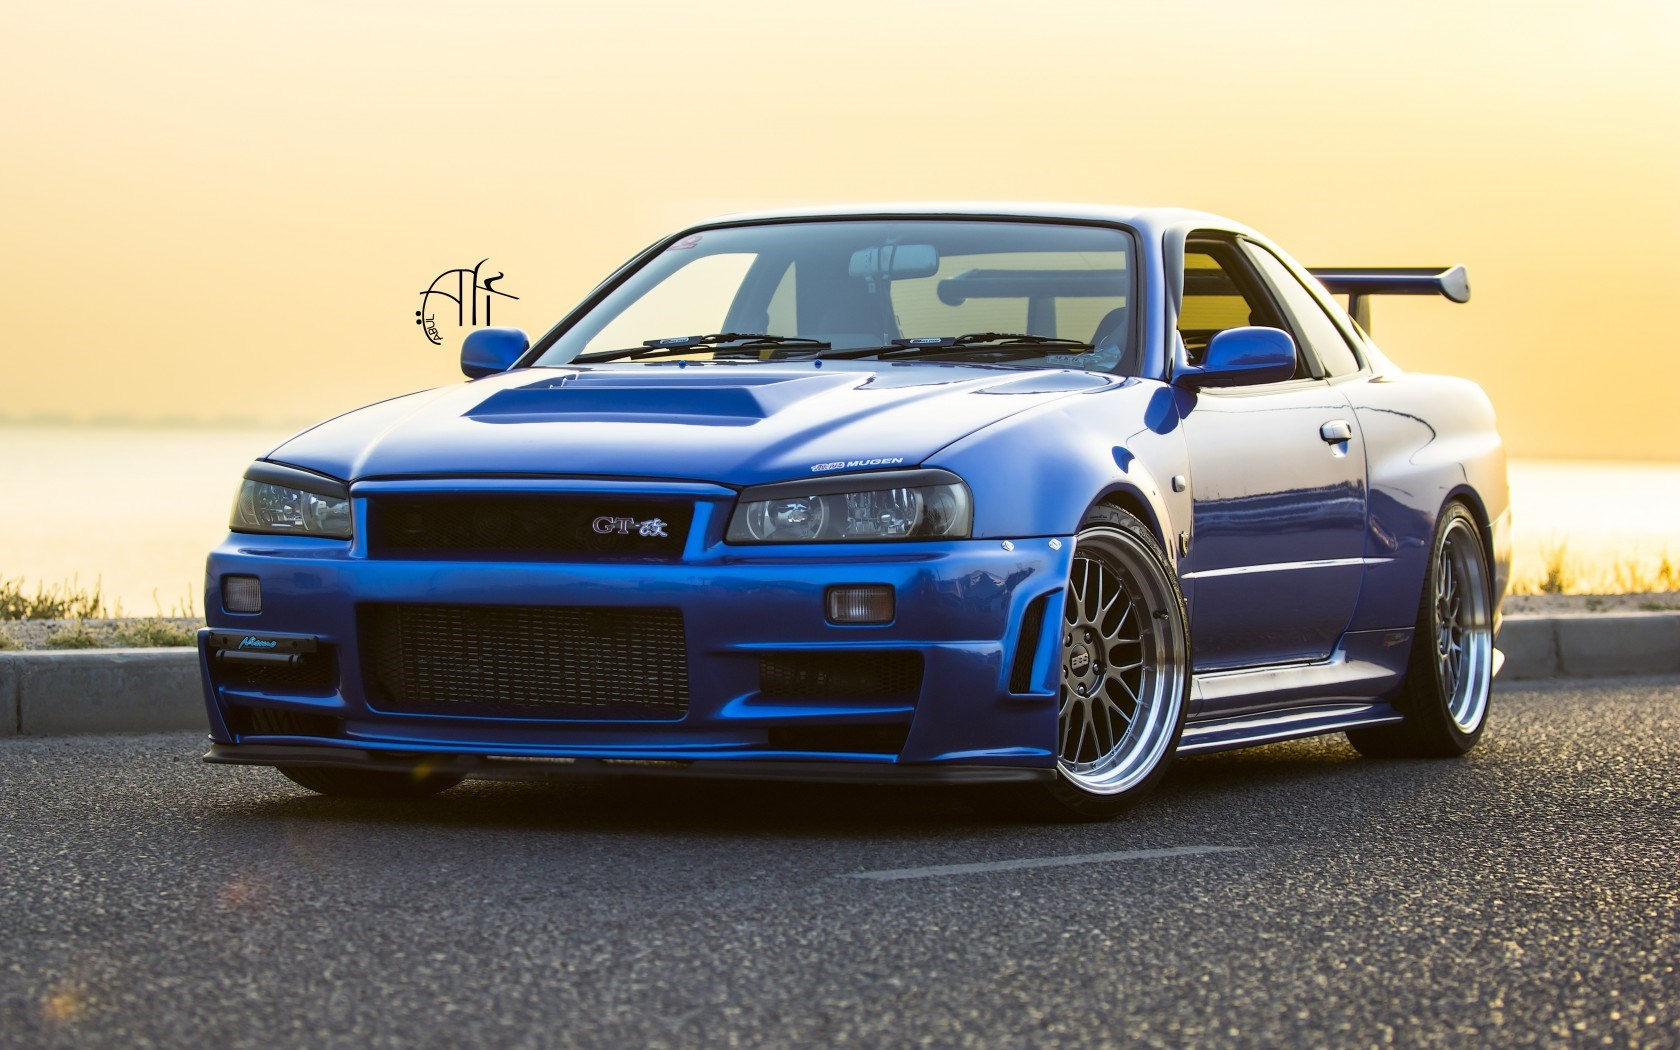 nissan skyline gt r r34 car wheels tuning wallpaper 1680x1050 17601. Black Bedroom Furniture Sets. Home Design Ideas